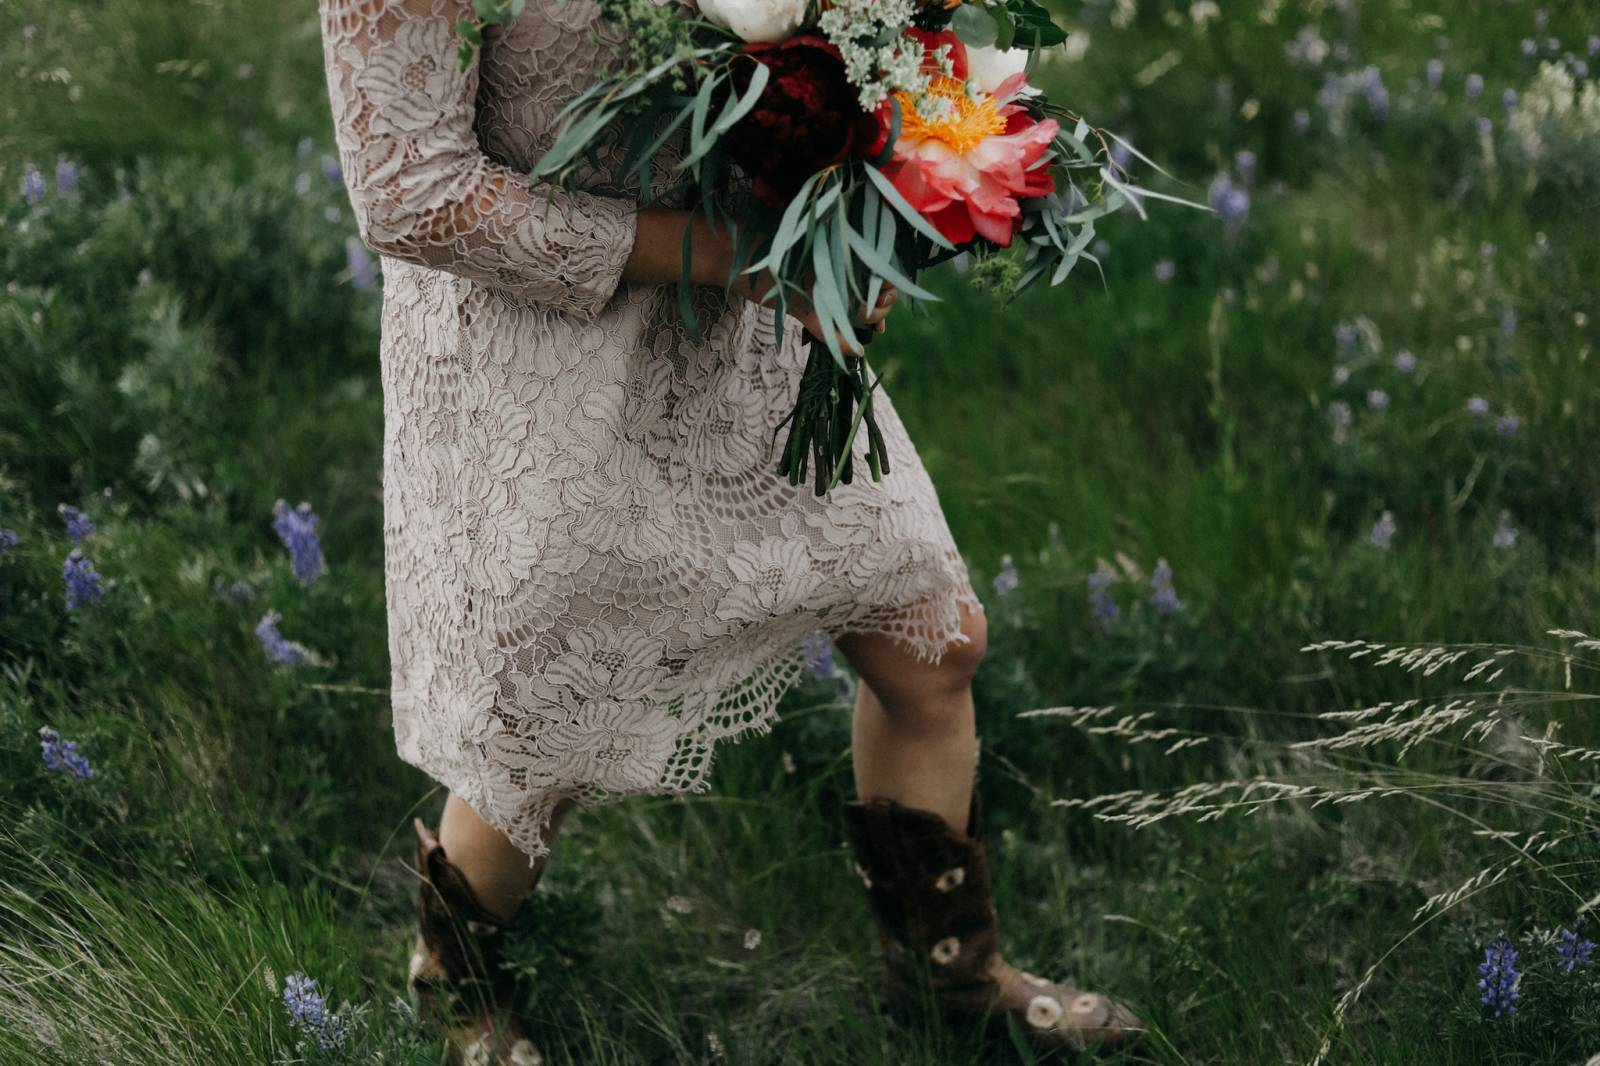 rustic casual bridal portrait captured by Alberta wedding photographer Malorie Reiter